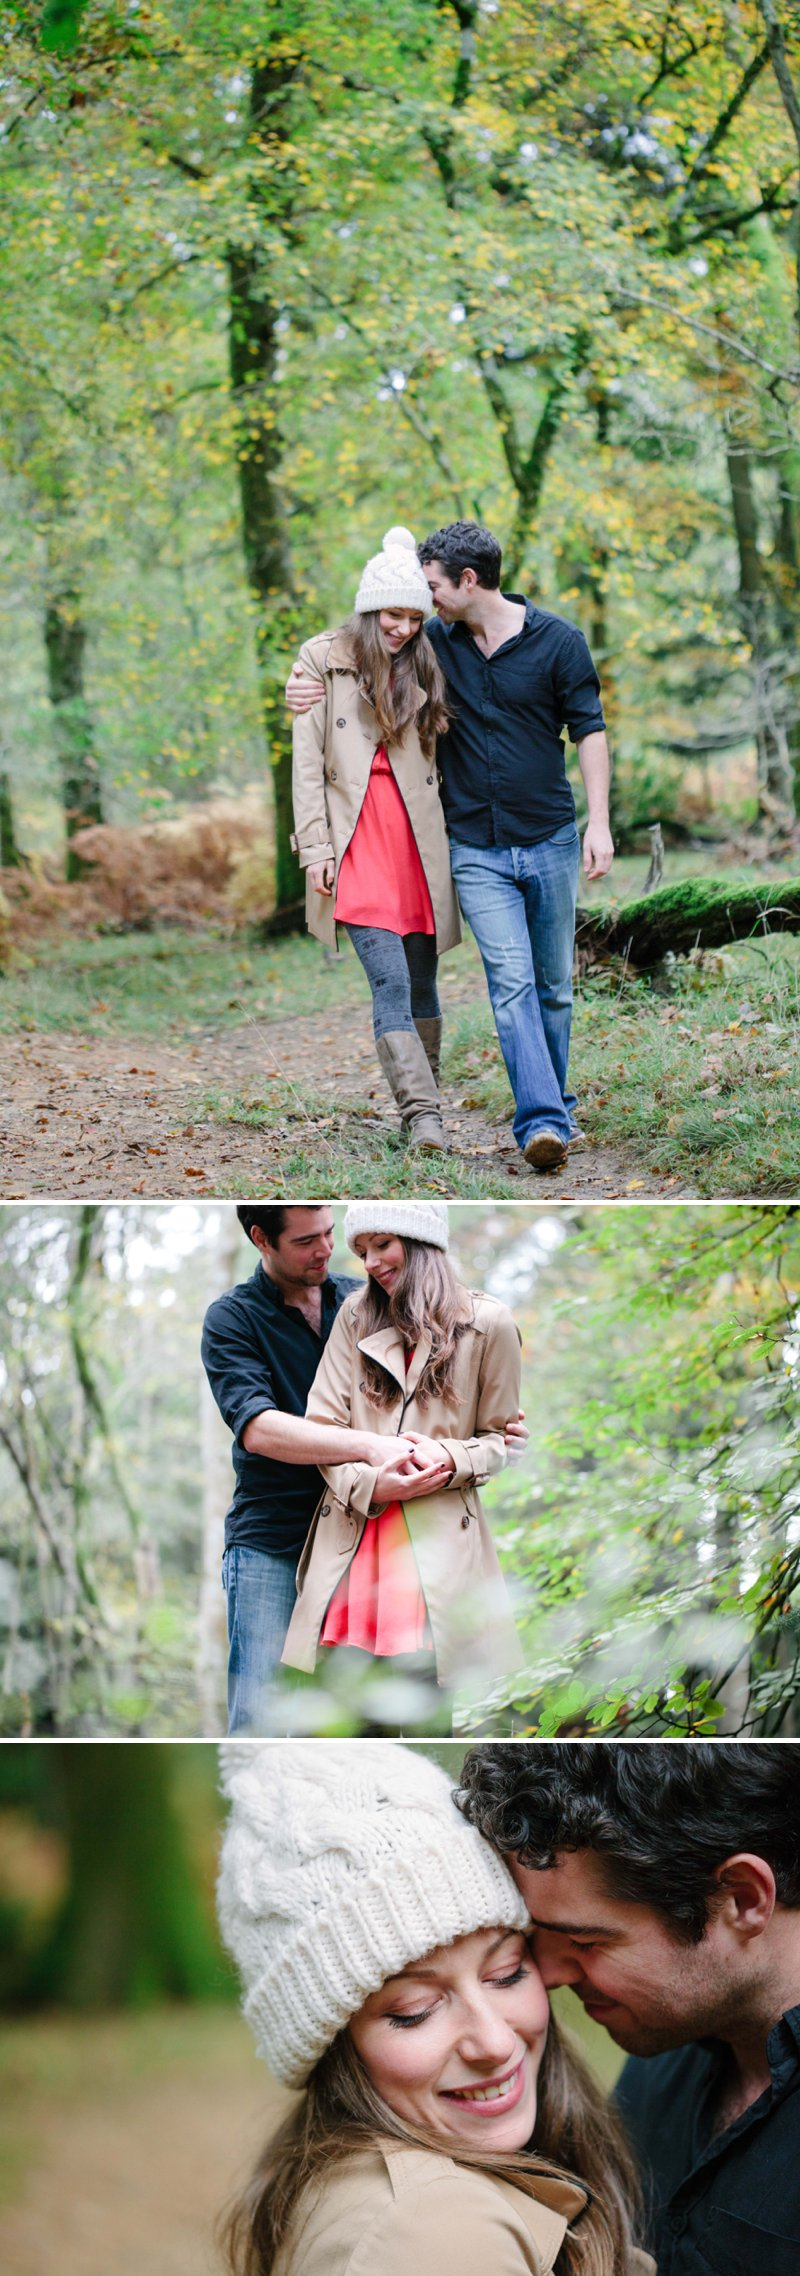 Romantic Prosecco Picnic Engagement Shoot In The Brecon Beacons Image By Millie & Belle Photography 8